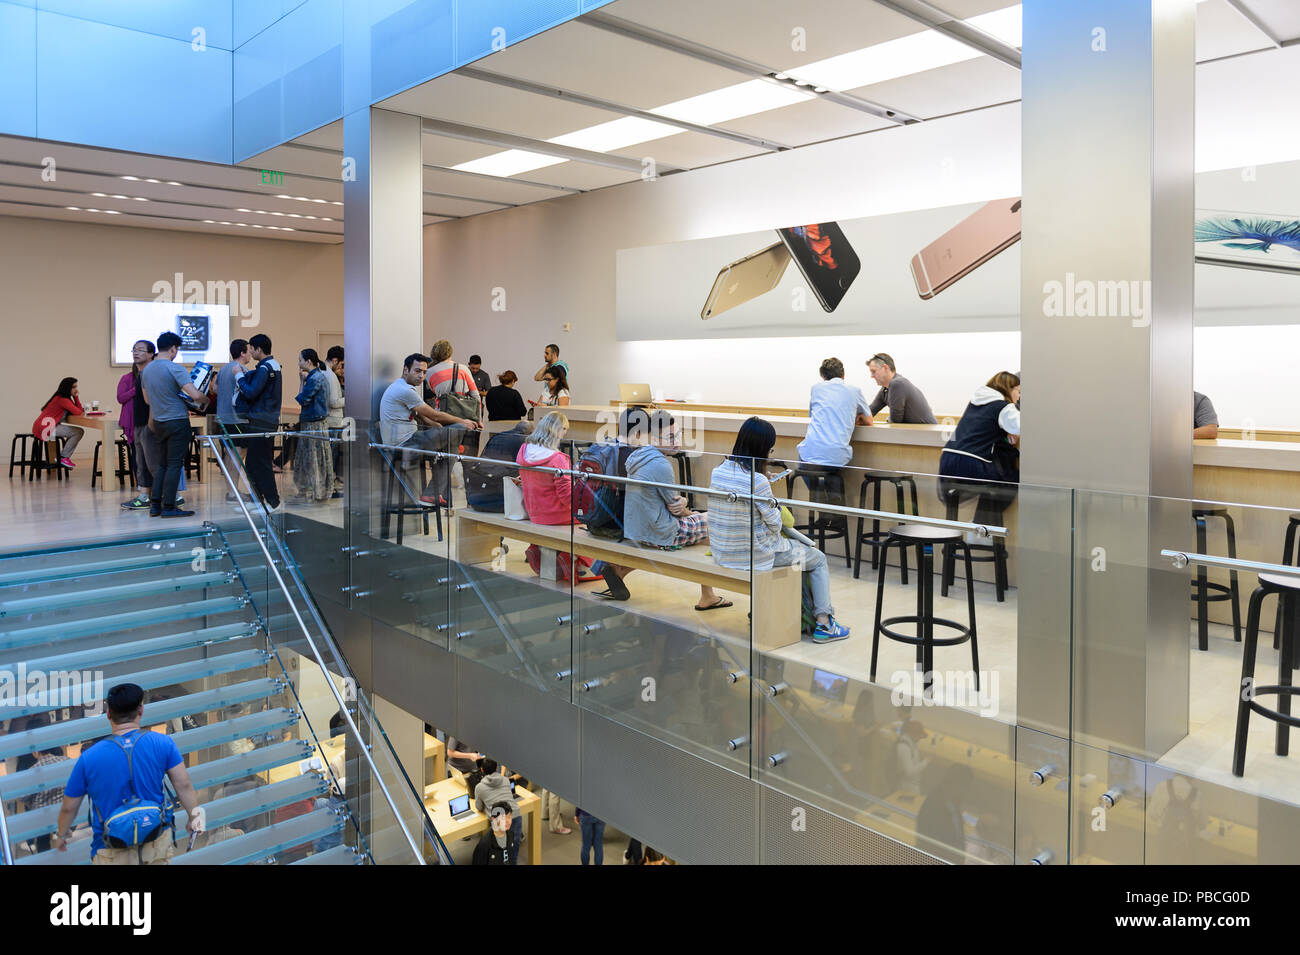 SAN FRANCISCO, USA   OCT 5, 2015: Interior Of The Apple Store In San  Francisco. Apple Inc. Is An American Multinational Technology Company In  Cupertin